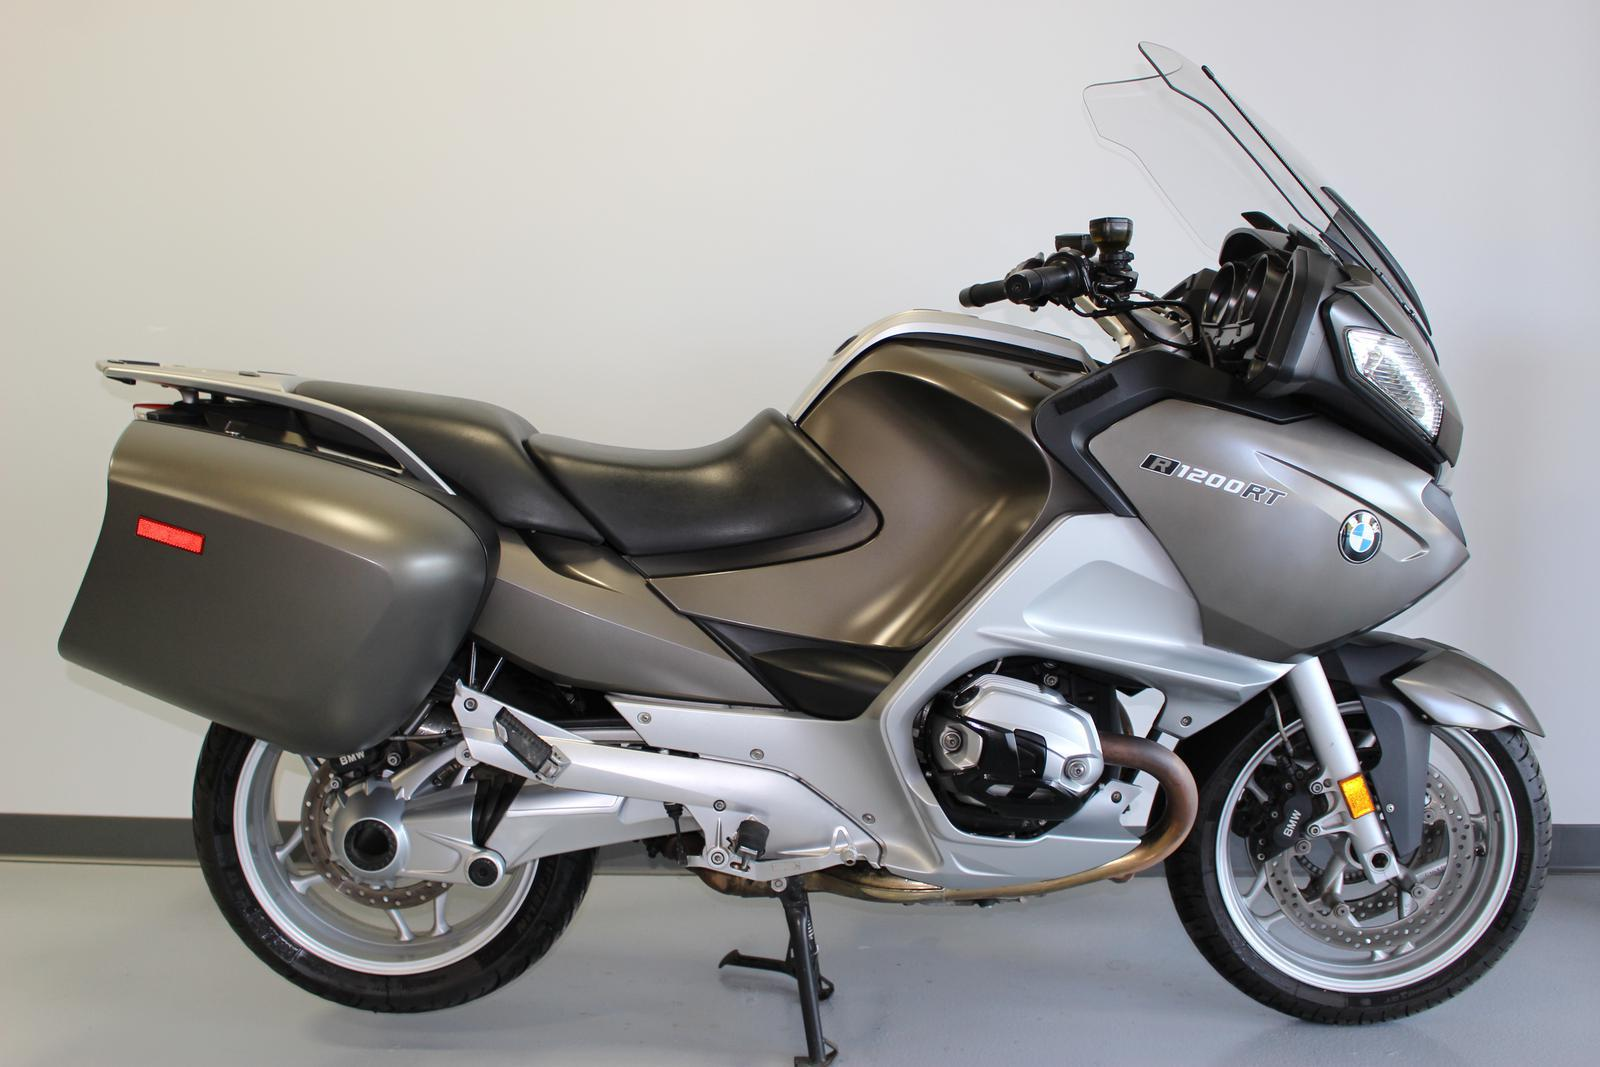 2010 bmw r 1200 rt sport touring motorcycle from de pere wi today sale 13 999. Black Bedroom Furniture Sets. Home Design Ideas